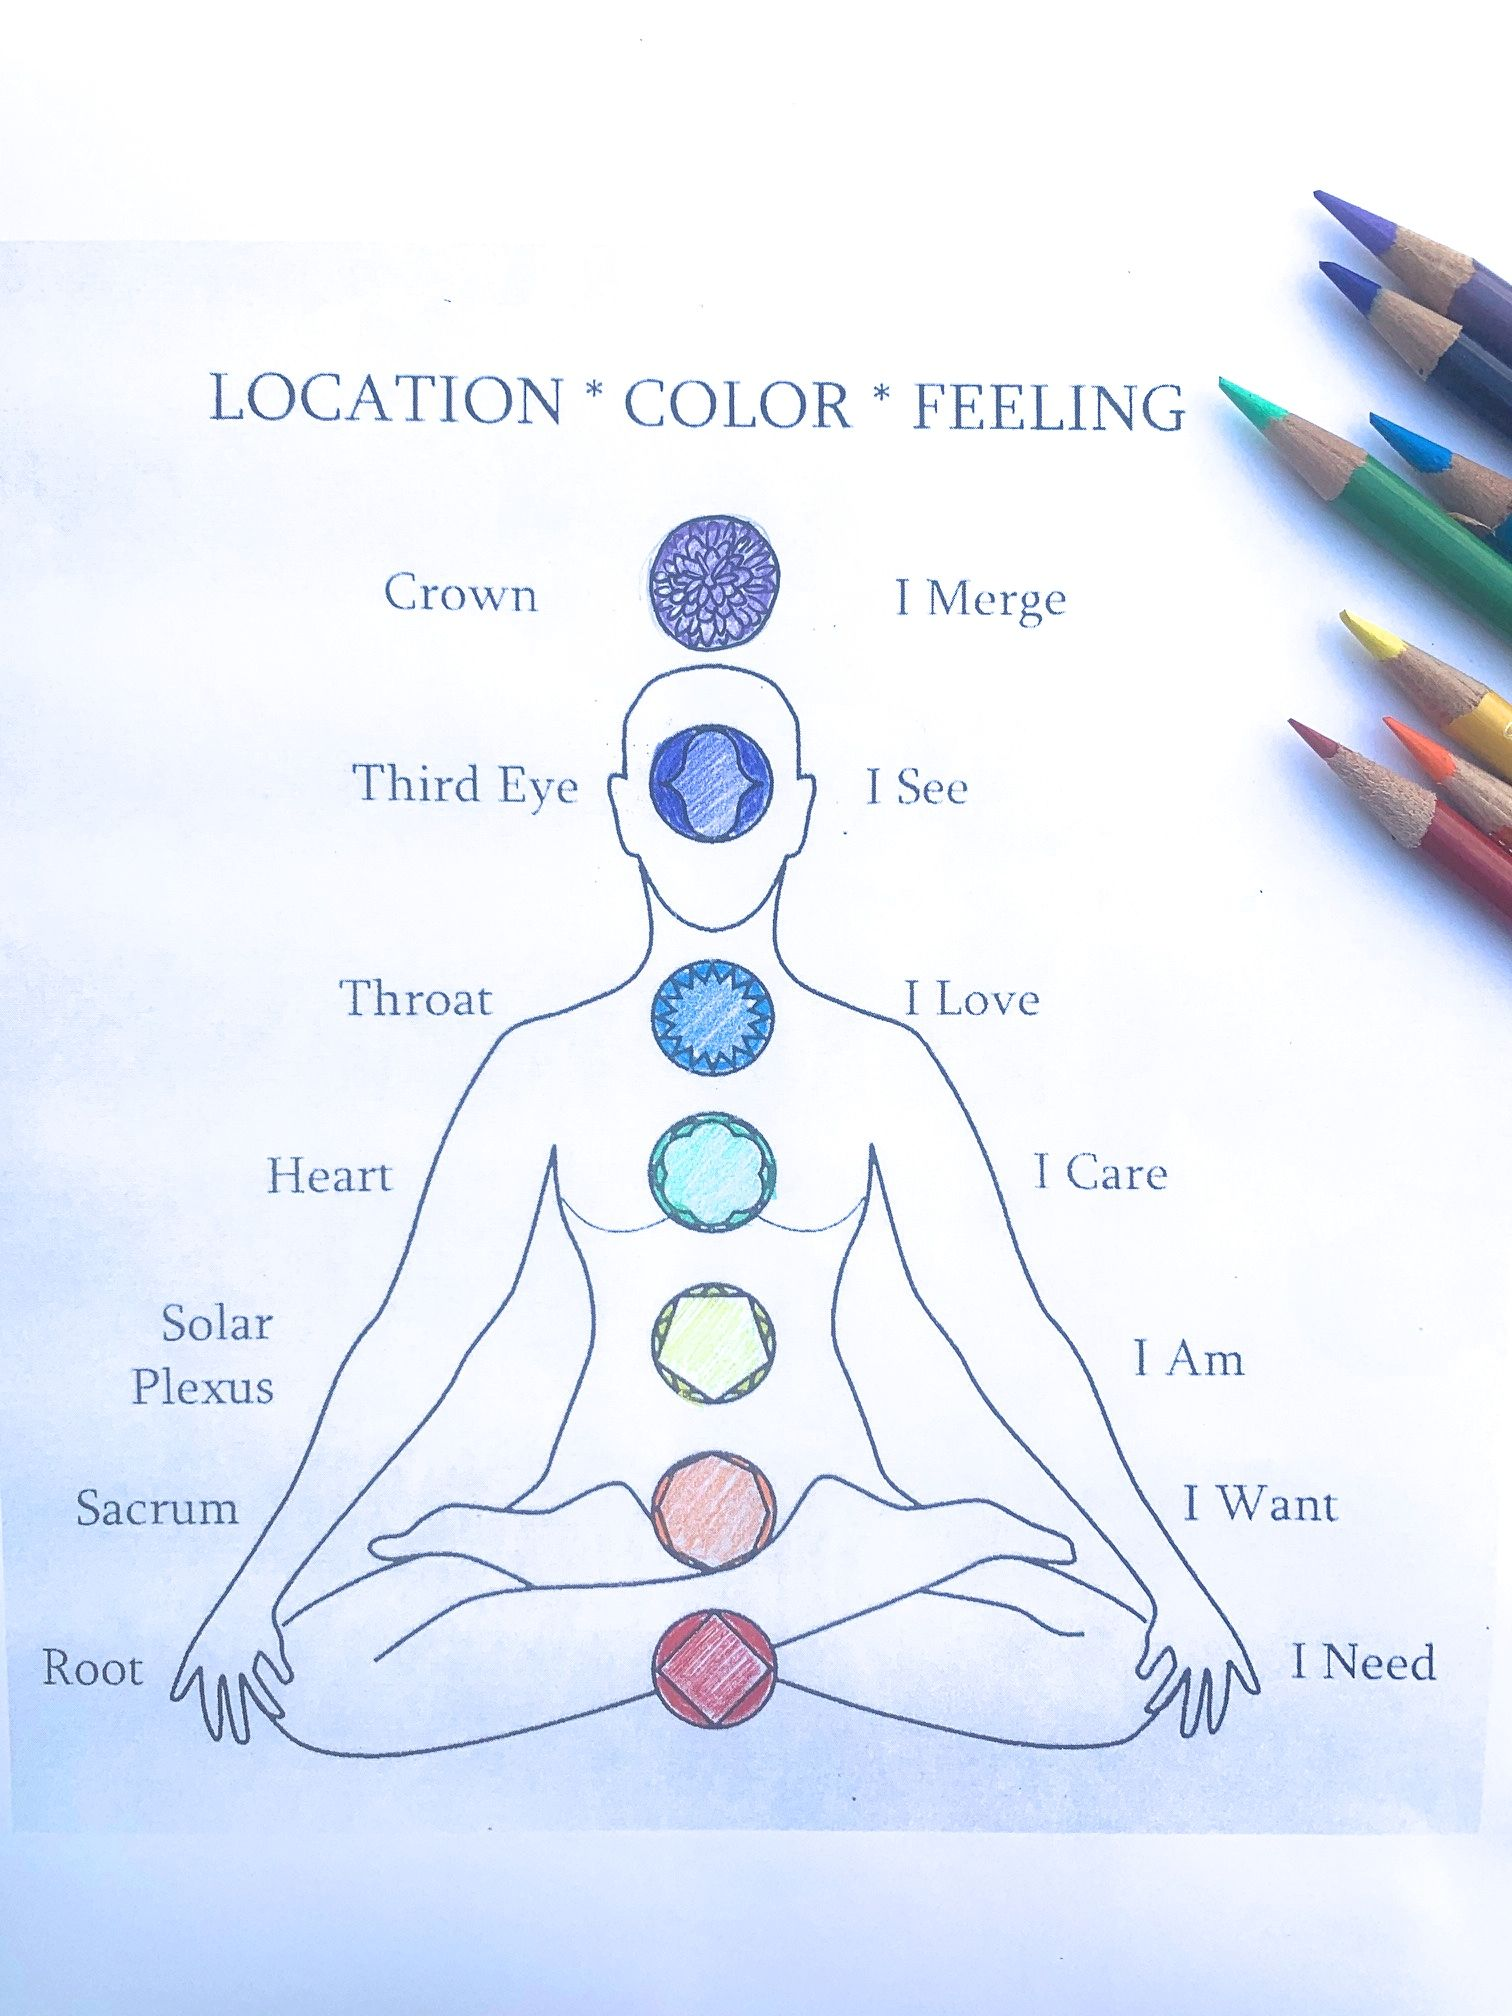 How do I use the chakras to manifest my desires? - The ...